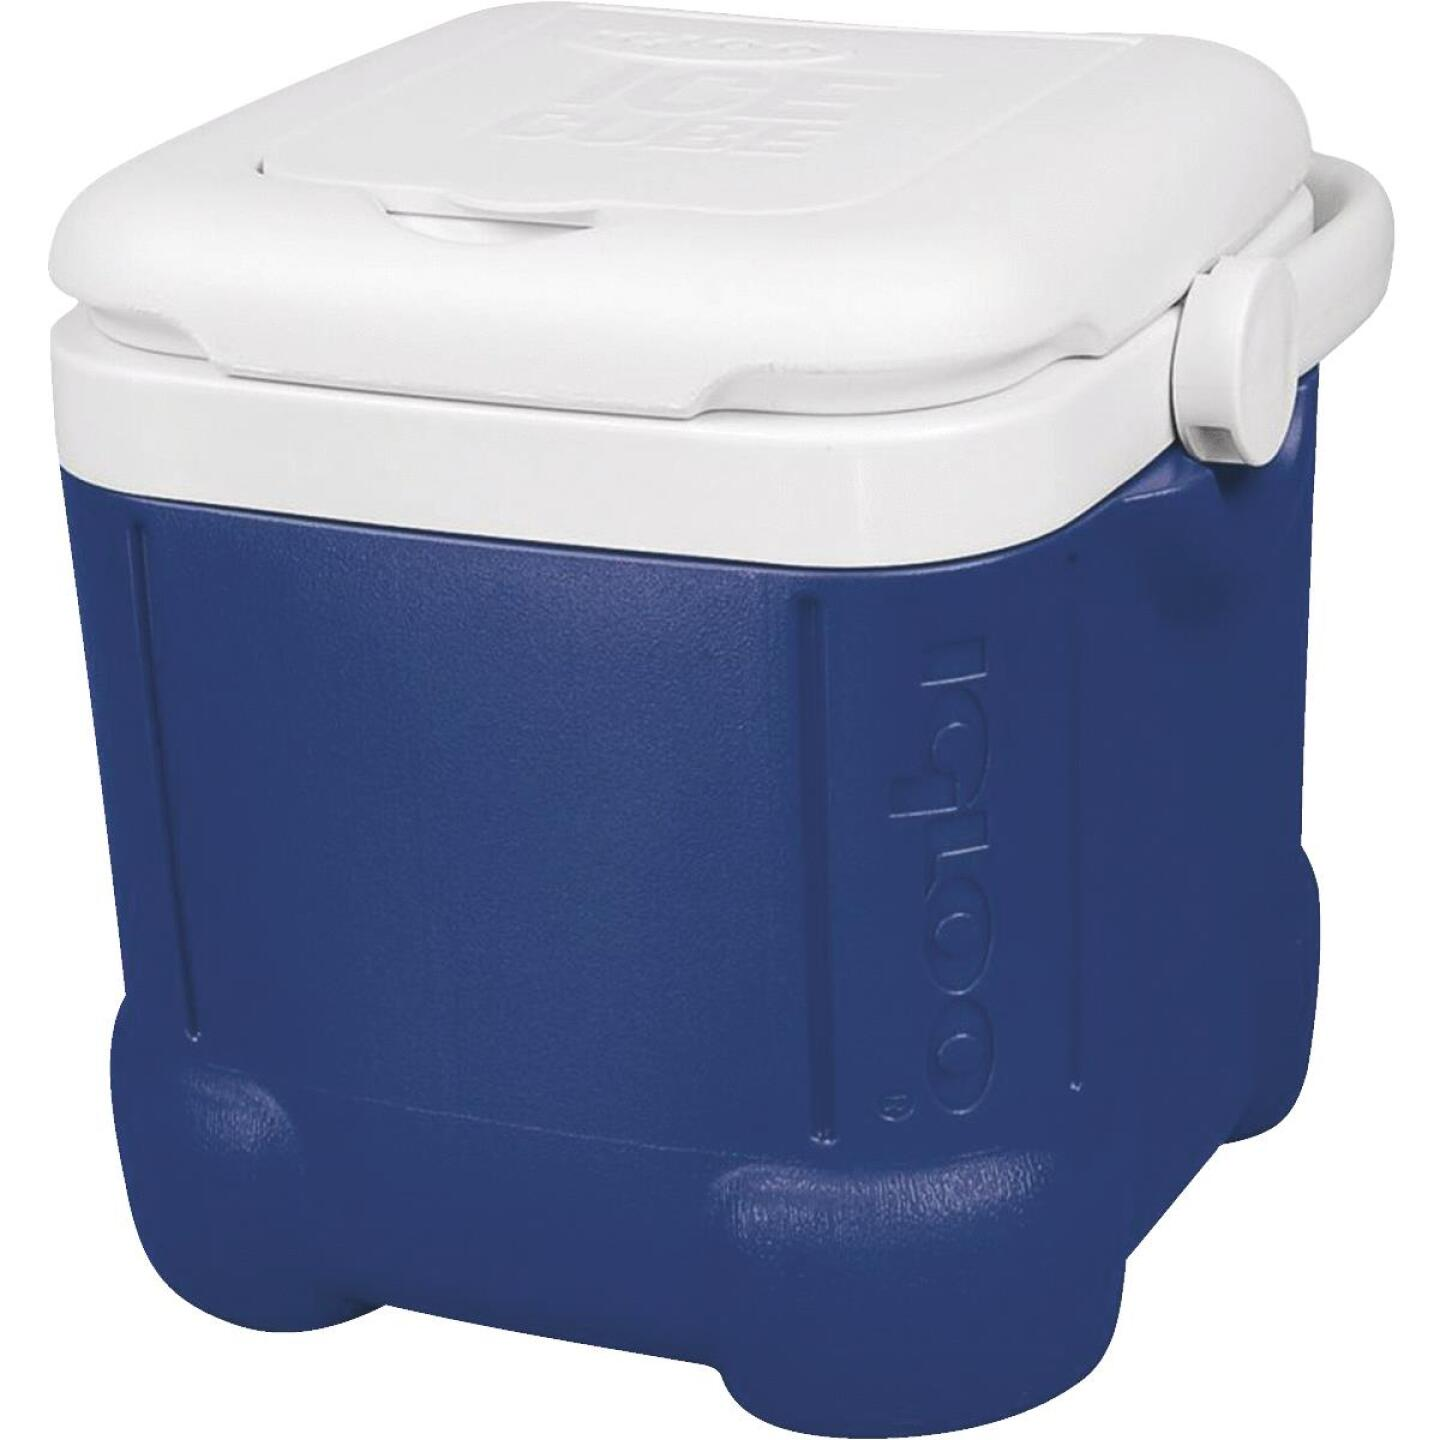 Igloo Ice Cube 12 Qt. Cooler, Blue Image 1